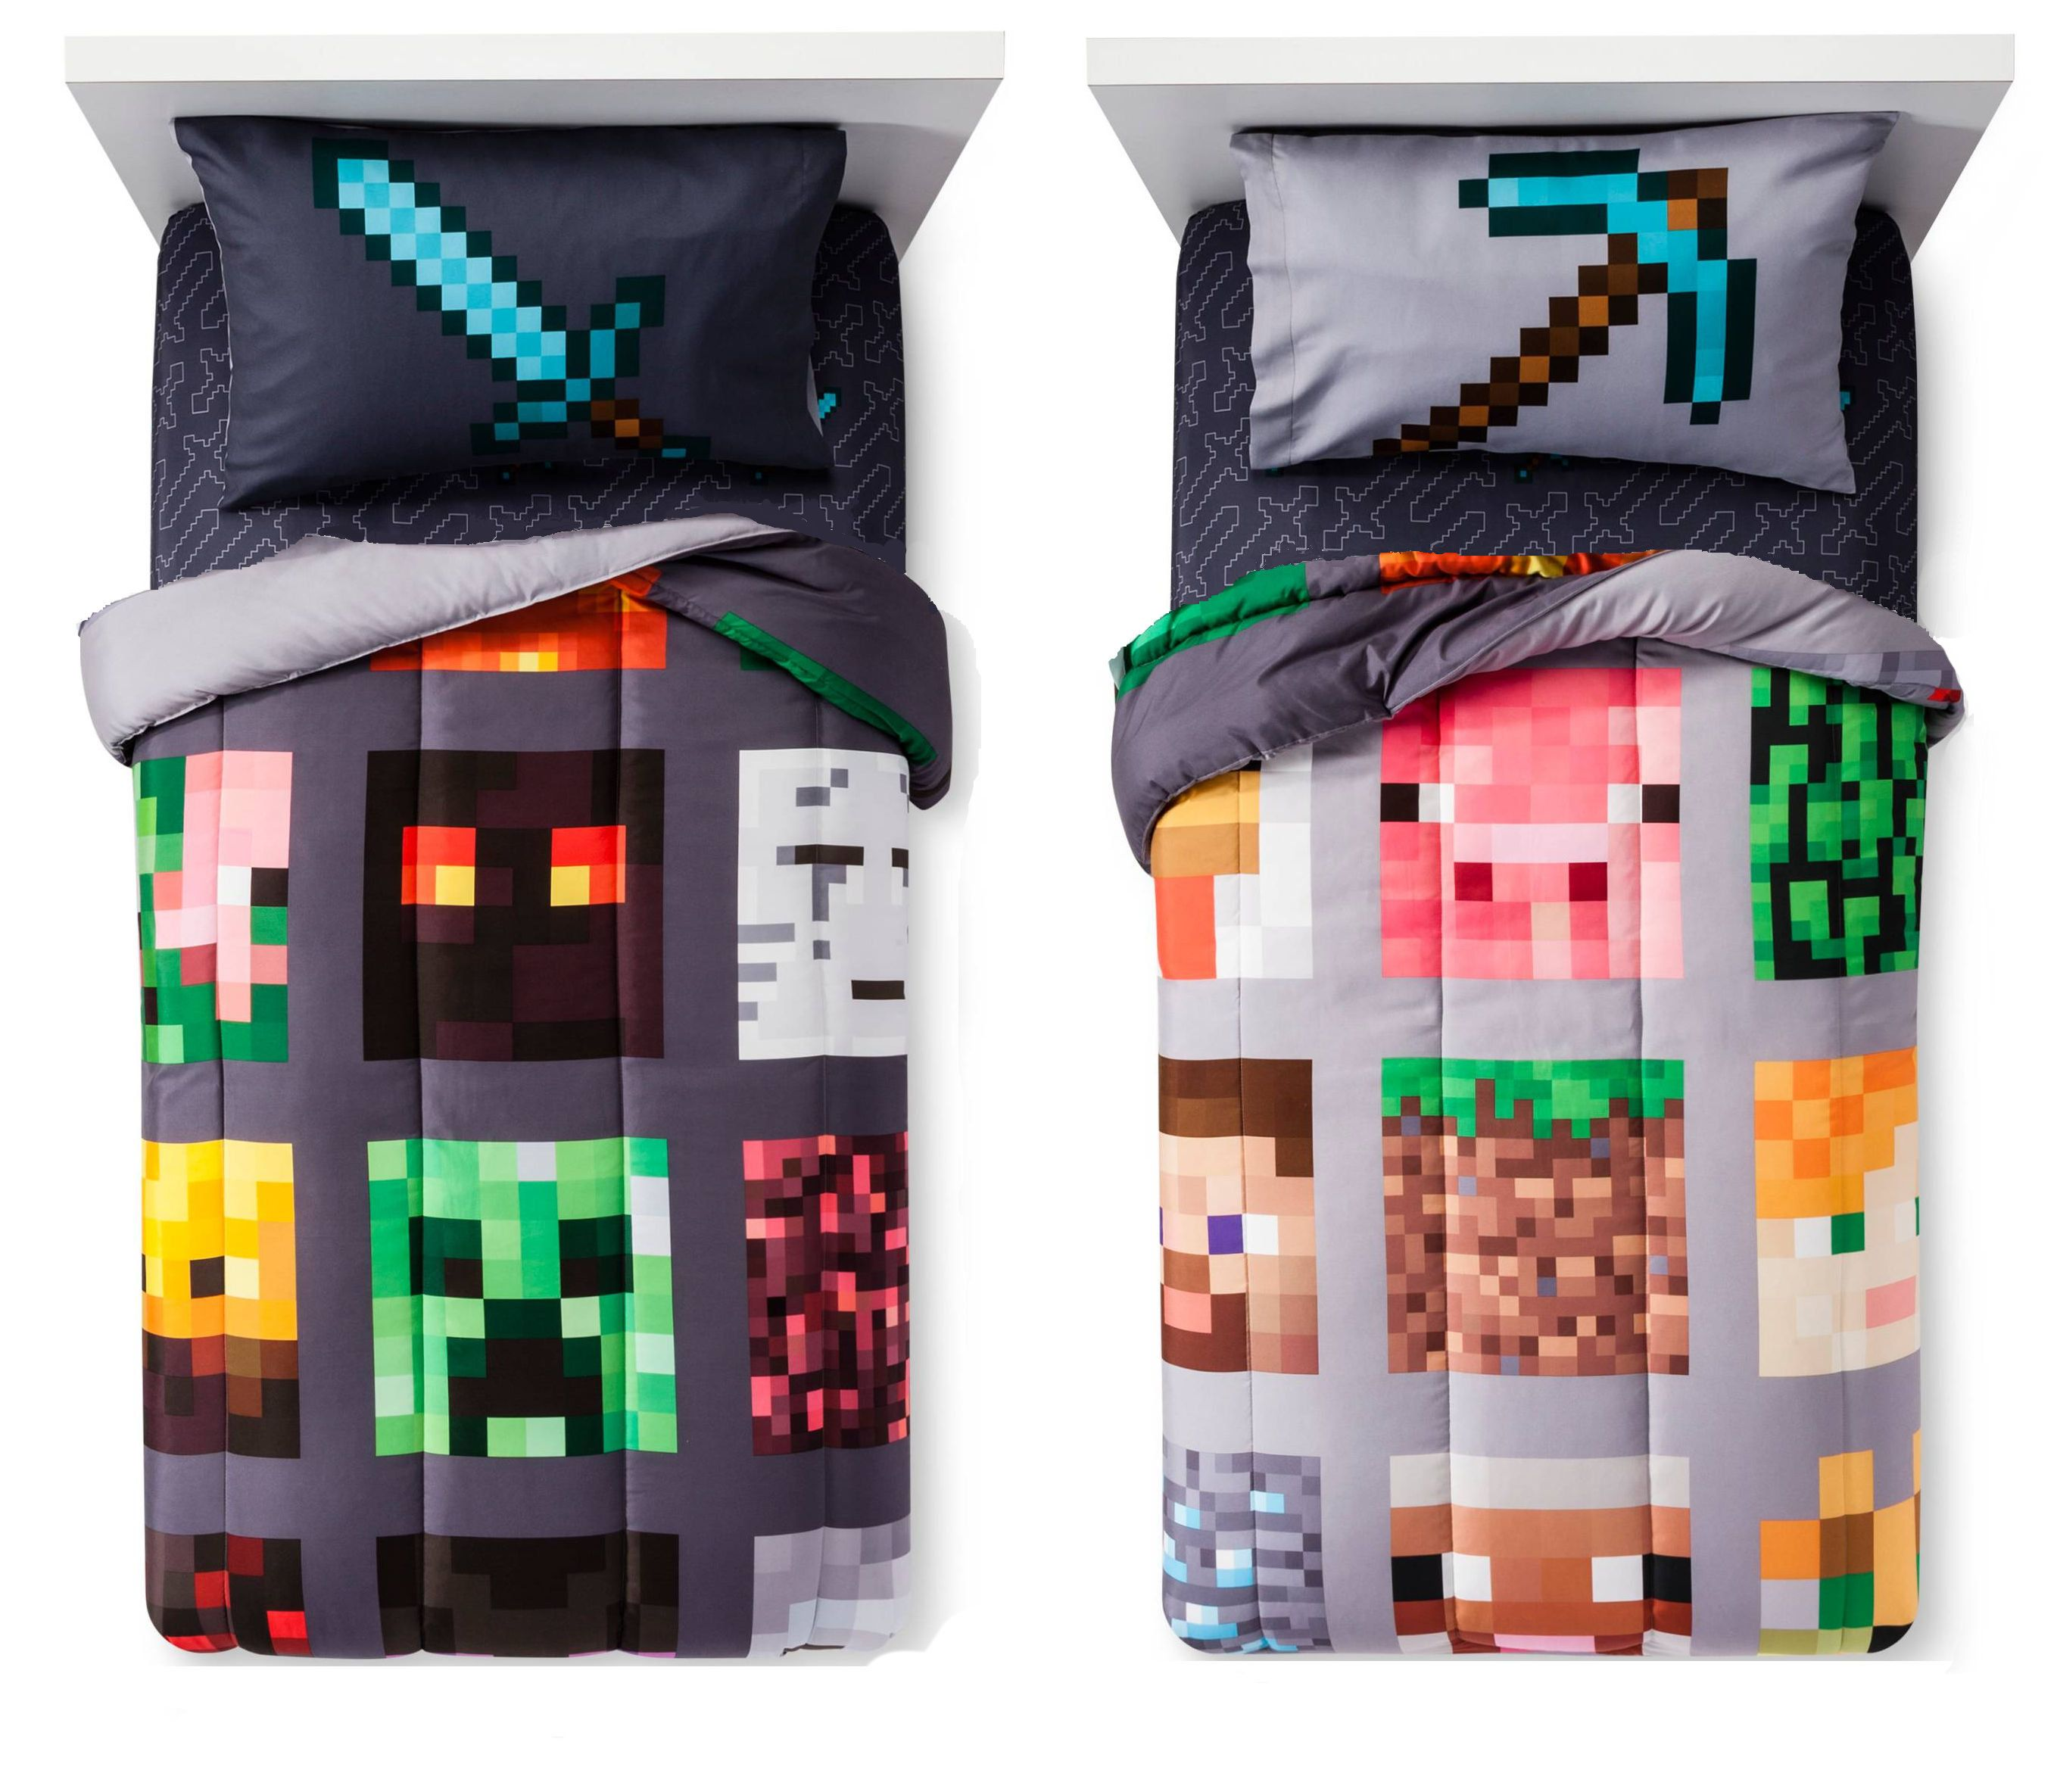 Minecraft 4 In 1 Bed A Bag Twin Or Full Comforter Sheet Set